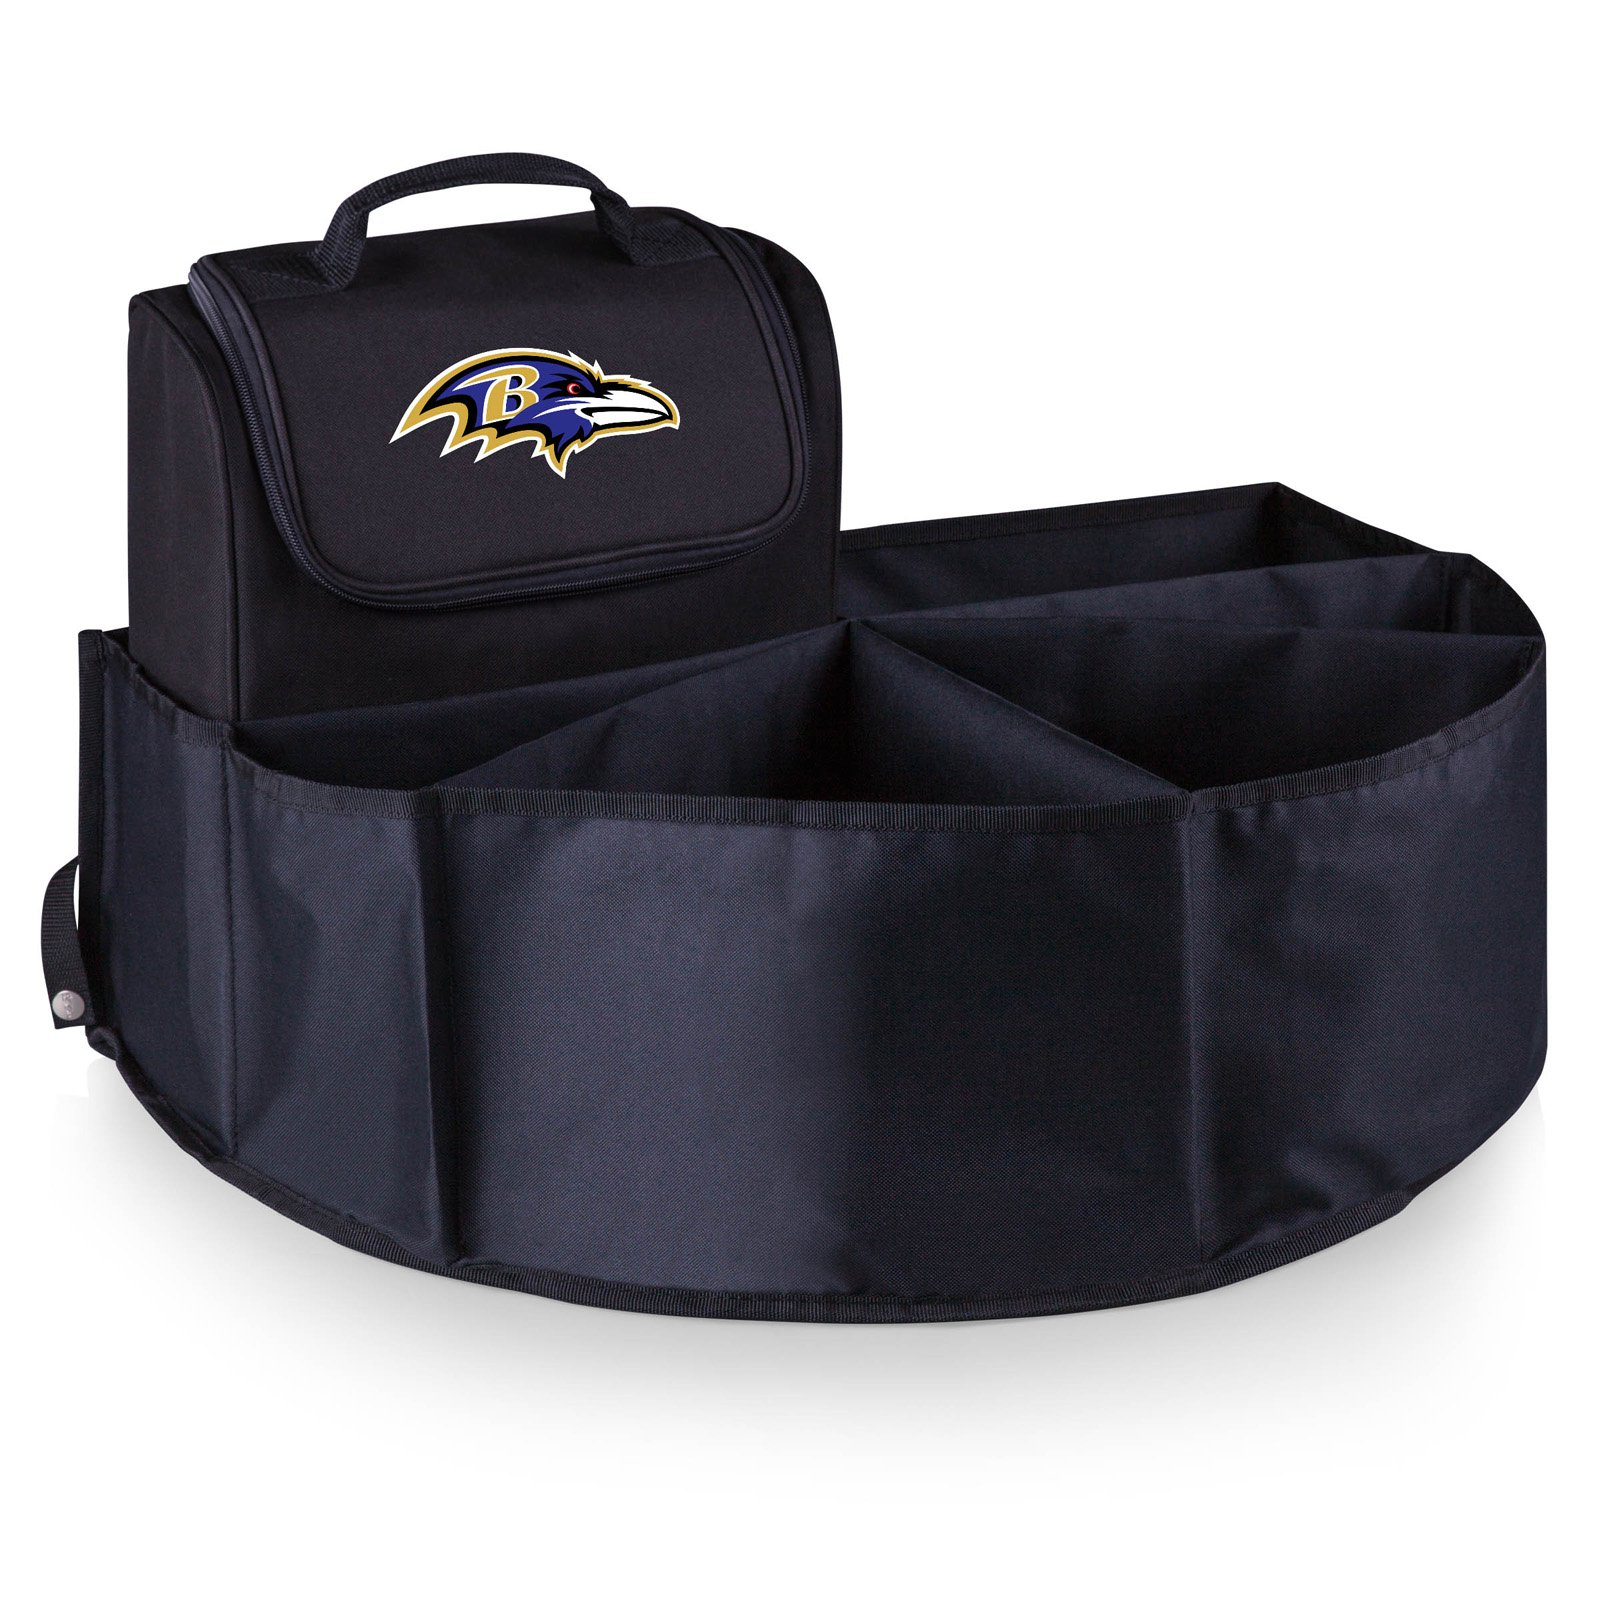 Picnic Time NFL Trunk Boss Organizer with Cooler